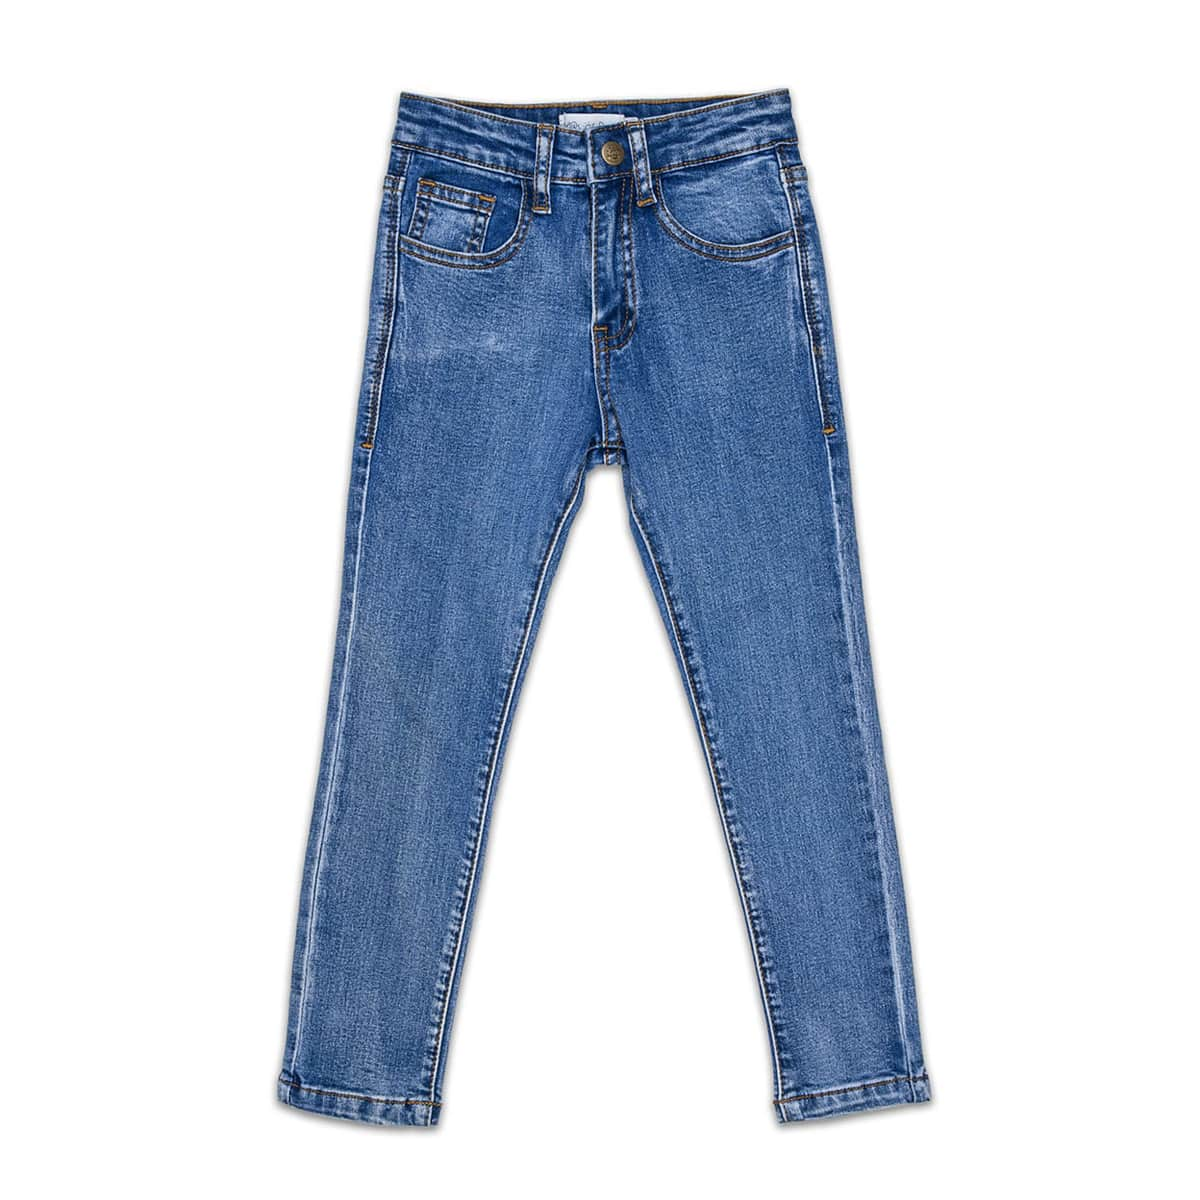 Days of Denim - Kids Skinny Jeans - Classic / Denim Wash - Front